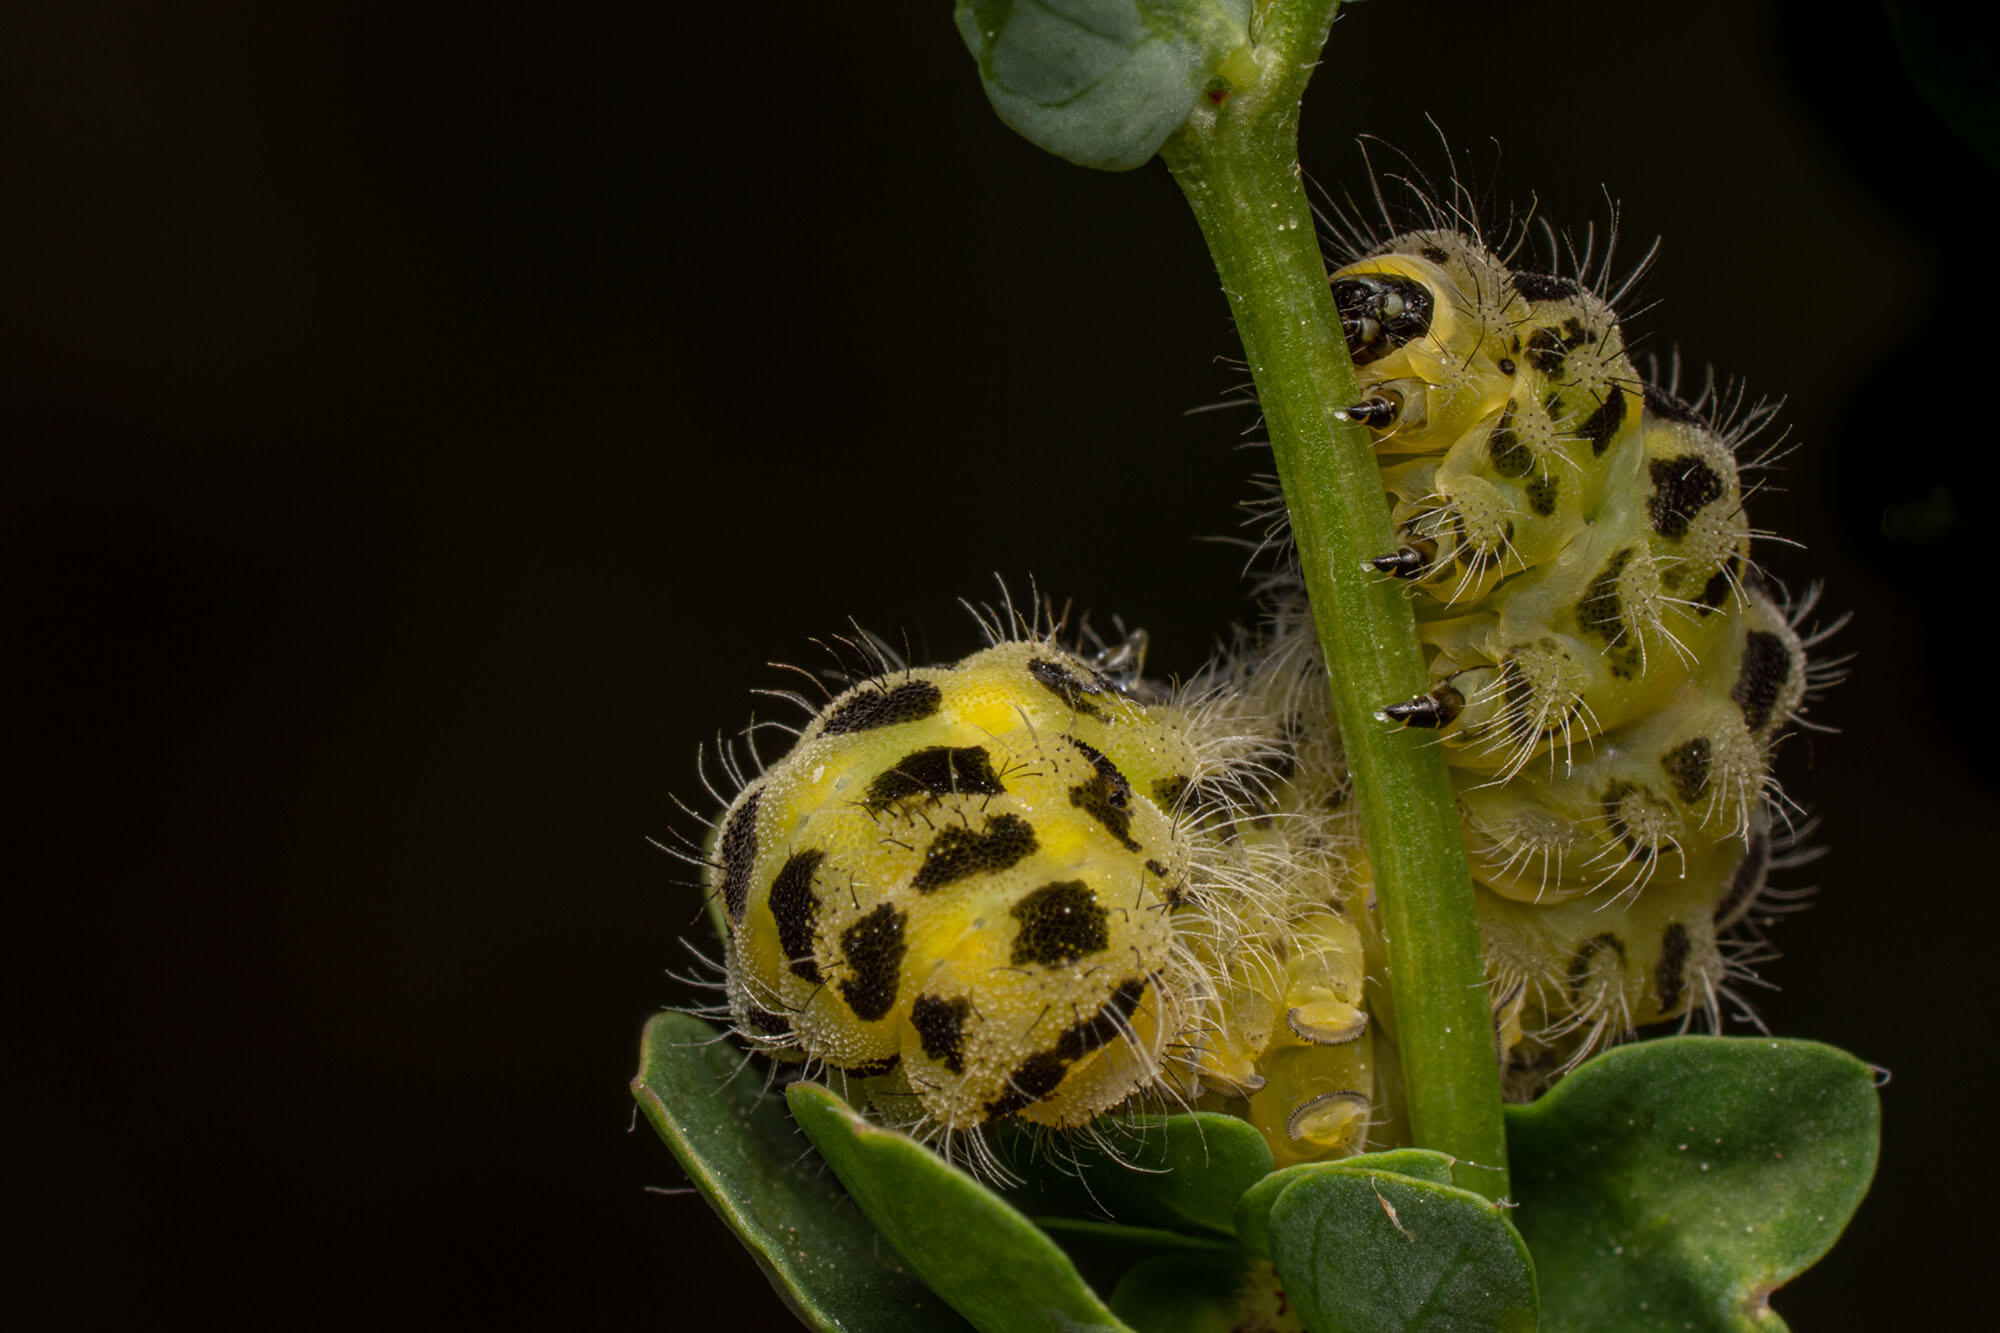 A yellow and black caterpillar eating a leaf magnified on a black background